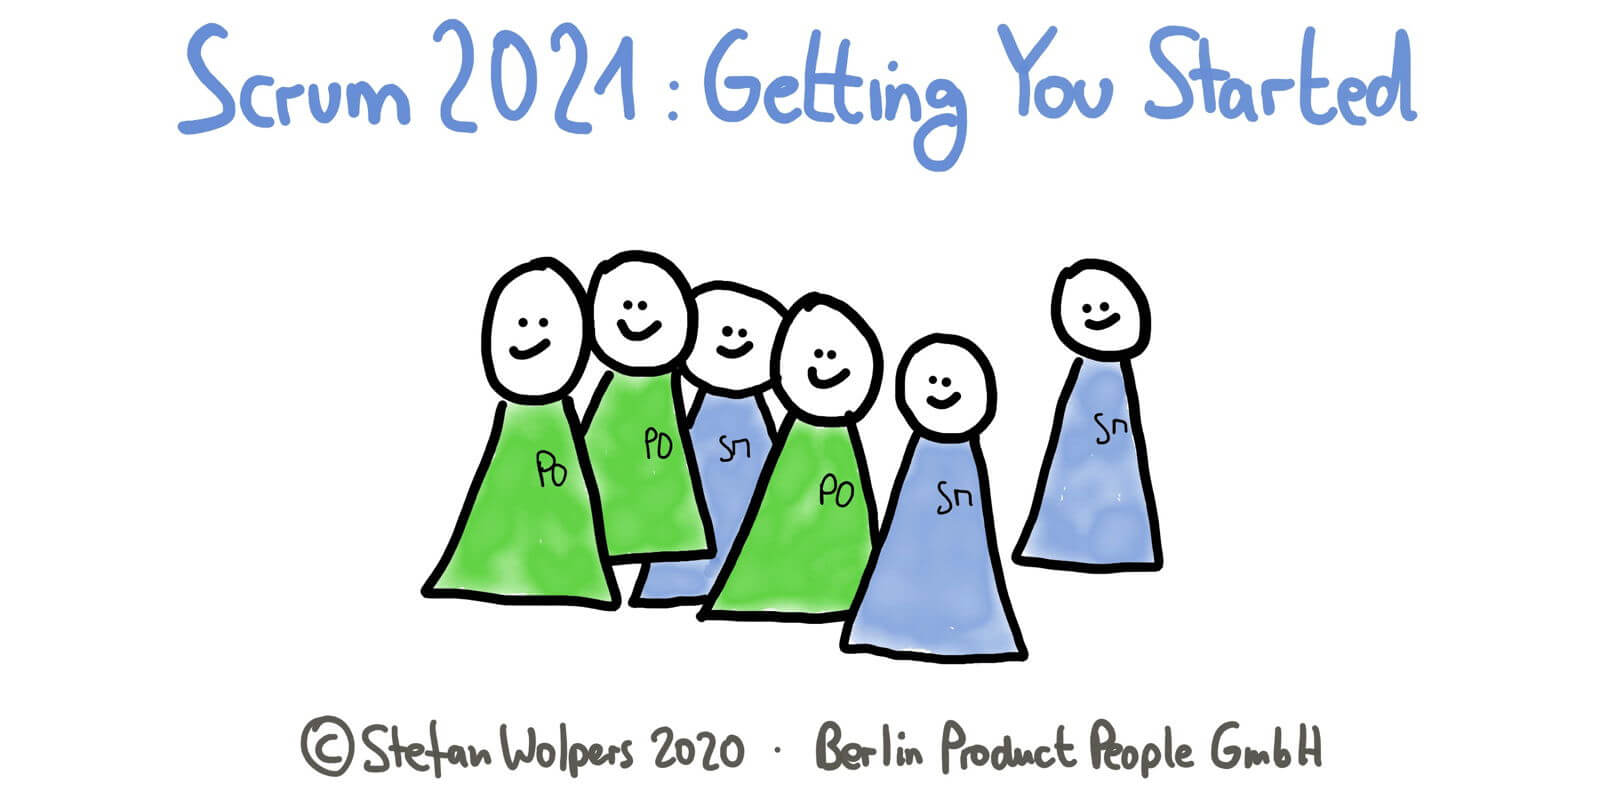 Scrum 2021: Getting You Started as Scrum Master or Product Owner — Age-of-Product.com